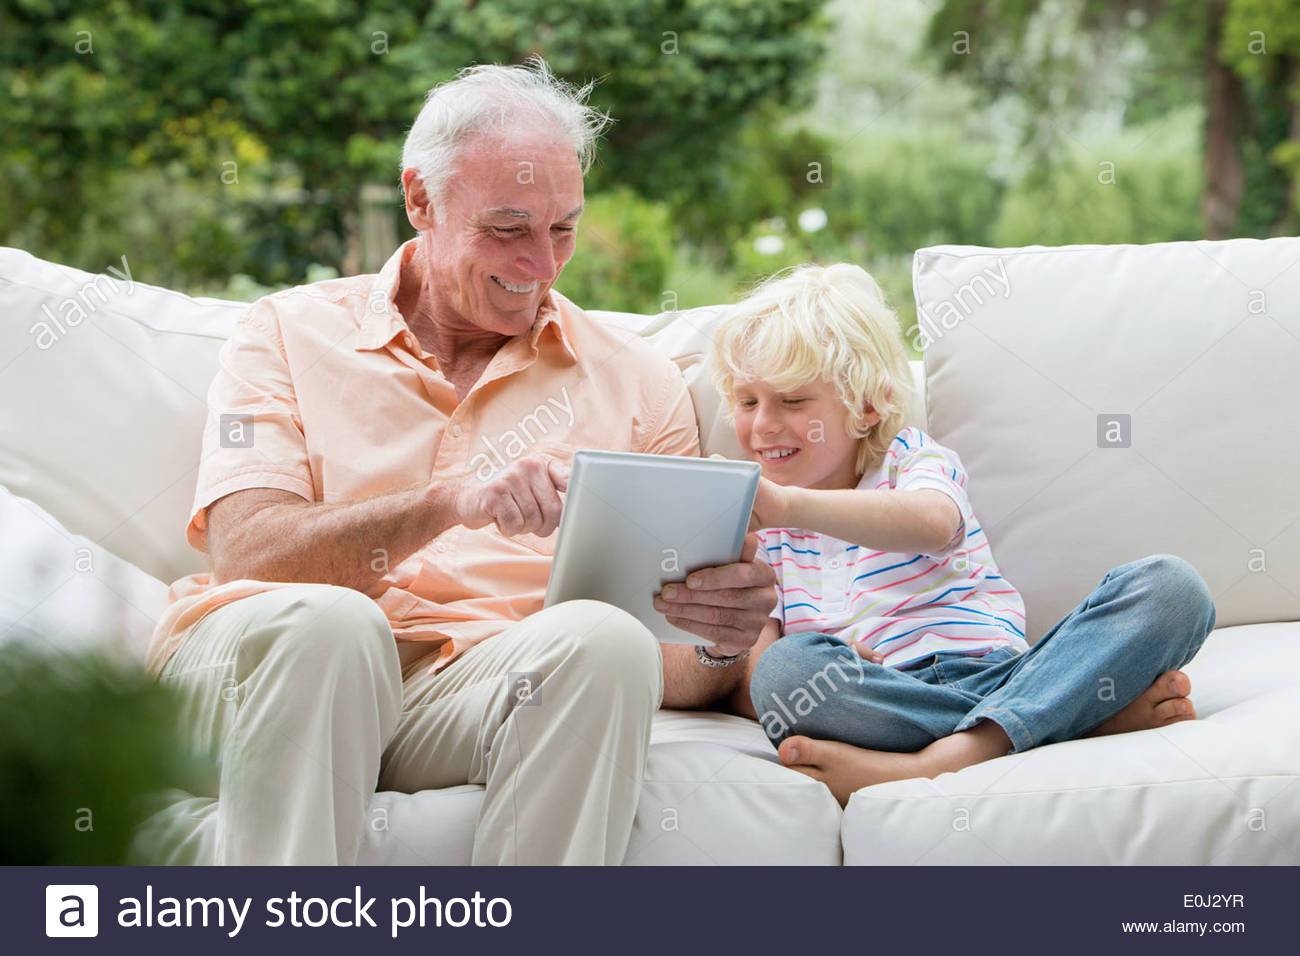 Grand-père et petit-fils using digital tablet on outdoor sofa Photo Stock